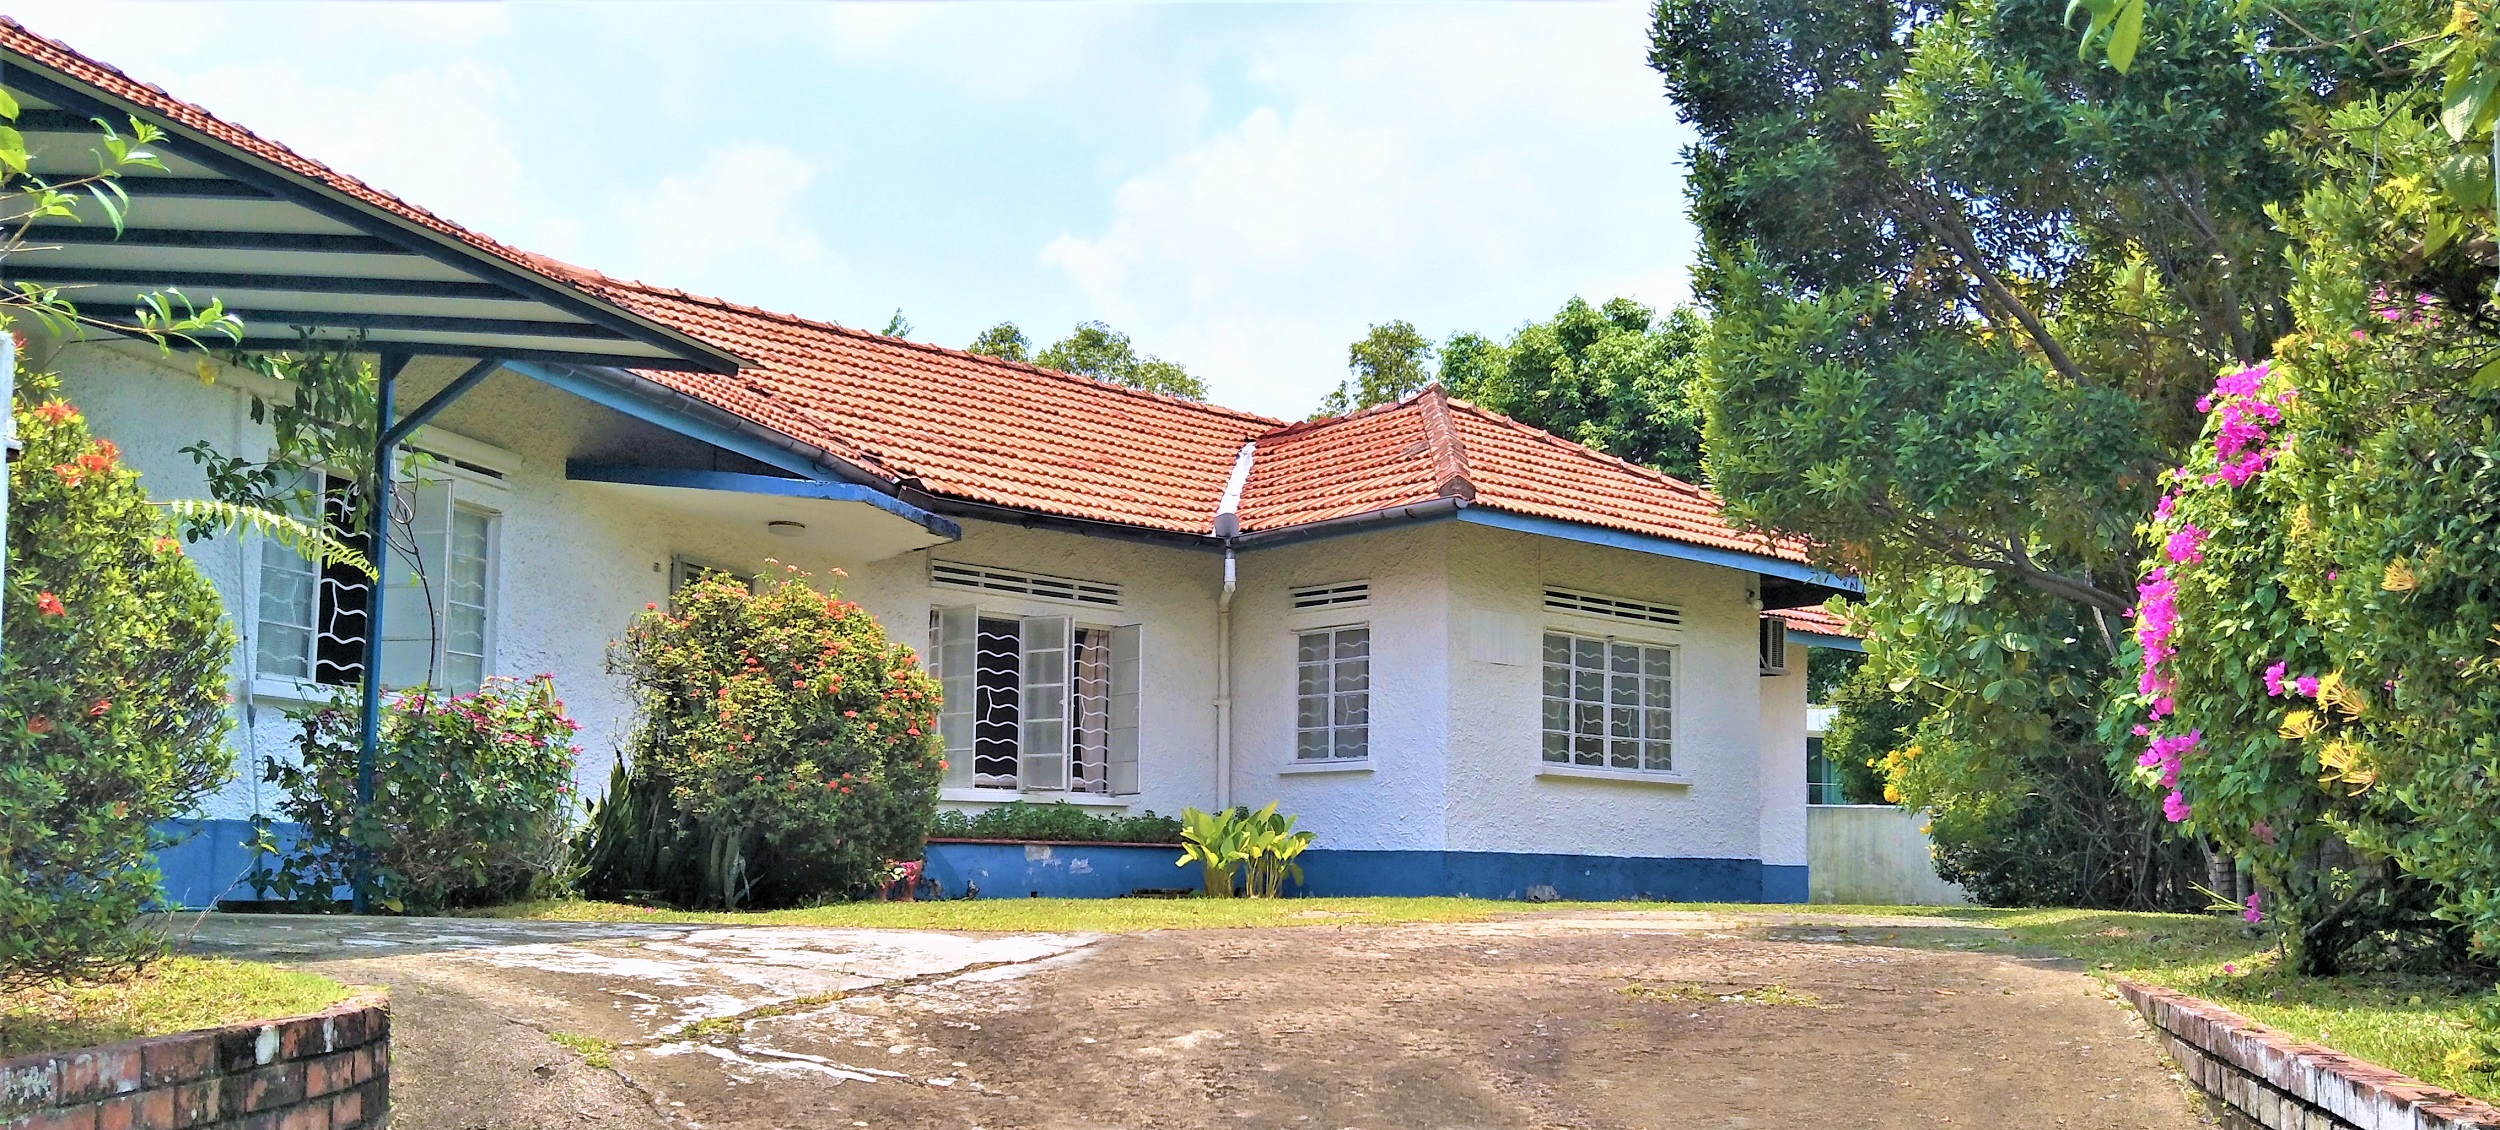 The bungalow at Garlick Avenue sits on a site of about 9,221 sq ft (Credit: Knight Frank Pte Ltd) - EDGEPROP SINGAPORE